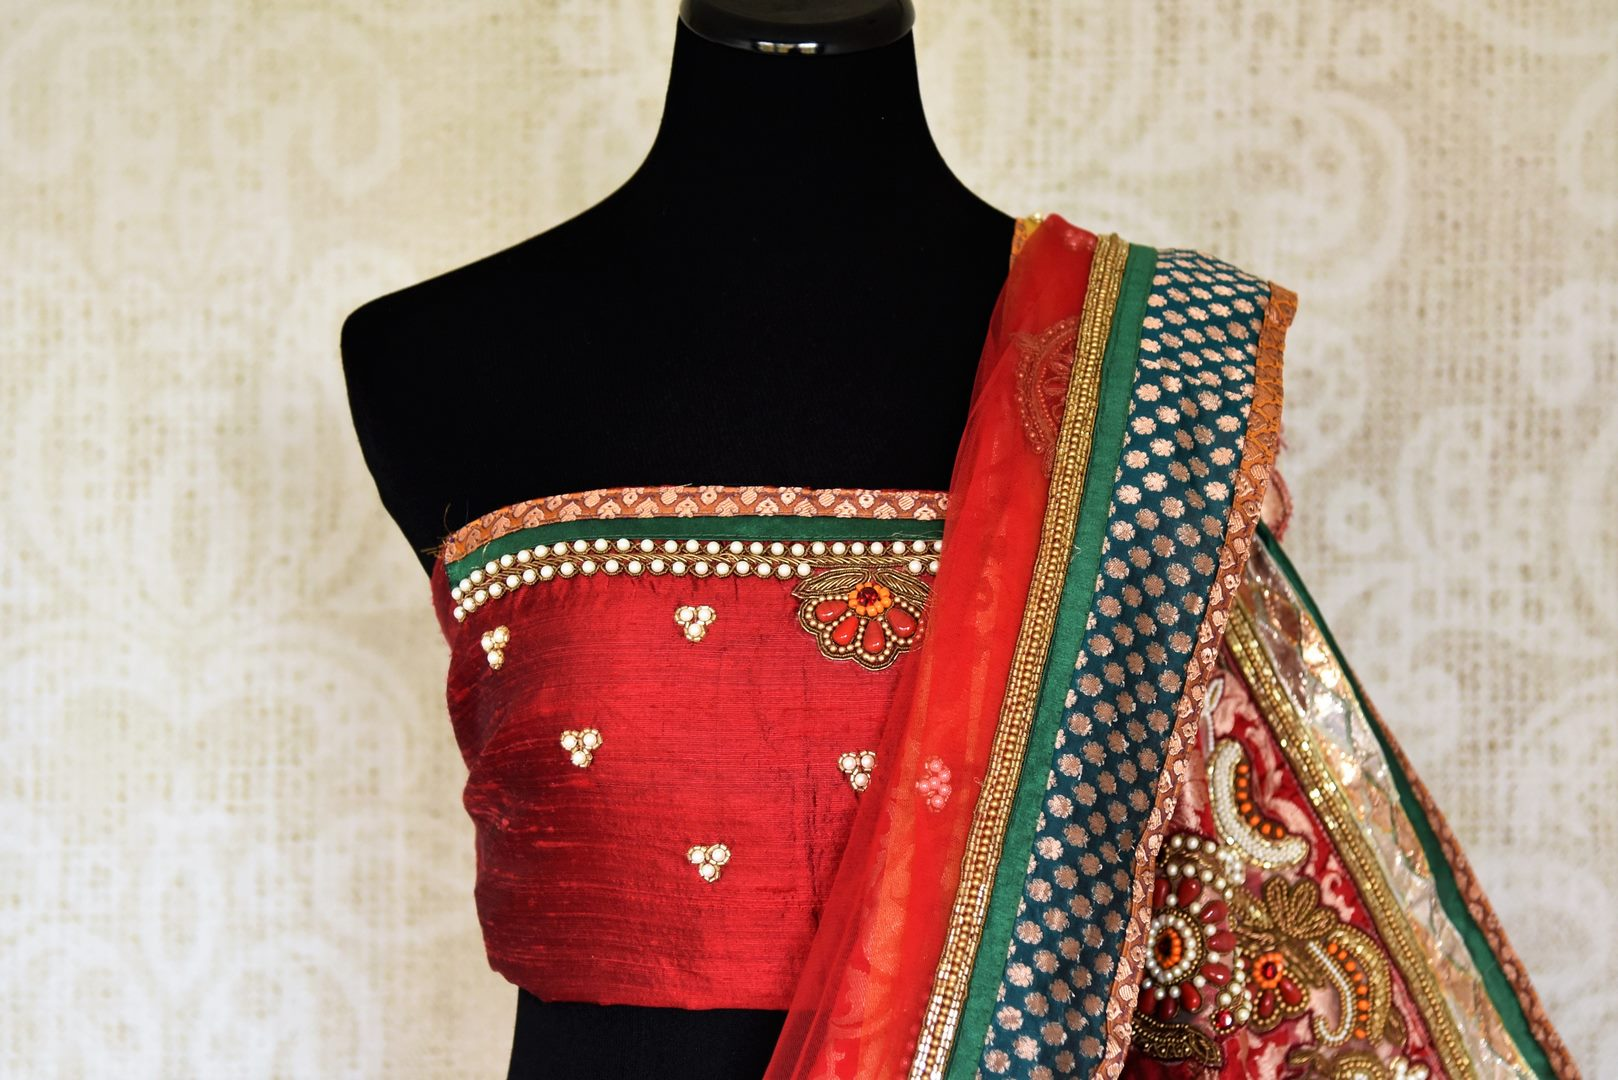 Shop red and yellow net saree online in USA with jewel pattern embroidery from Pure Elegance. Let your ethnic style be one of a kind with an exquisite variety of Indian handloom sarees, pure silk sarees, designer sarees from our exclusive fashion store in USA.-blouse pallu